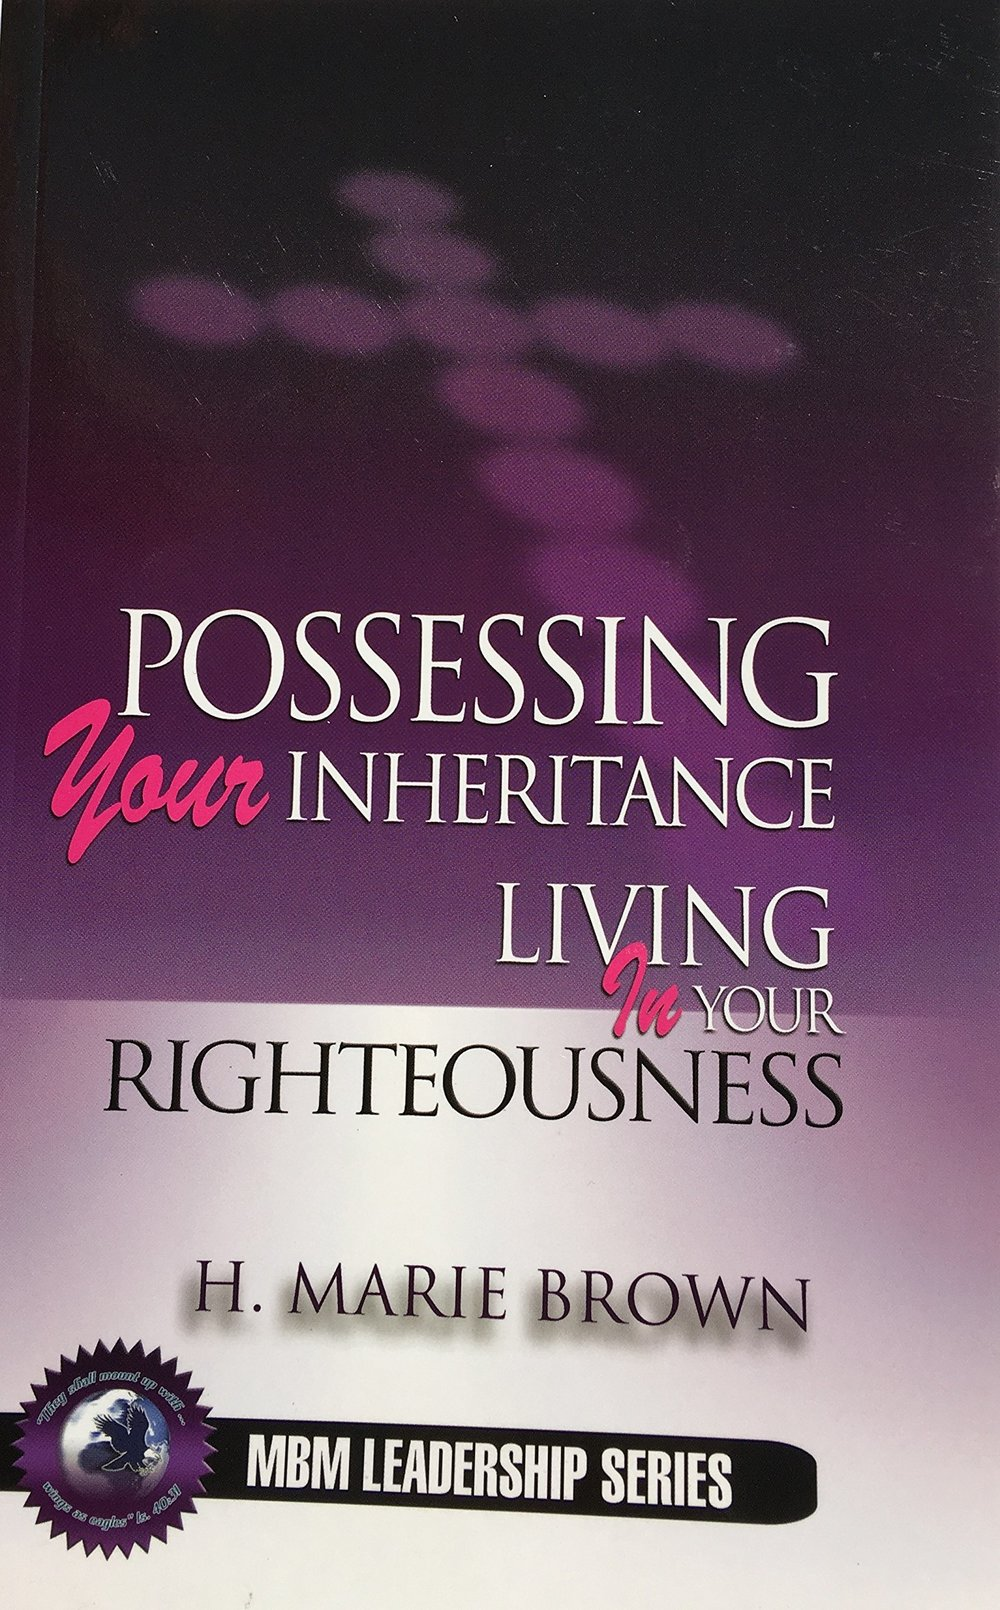 Possessing Your Inheritance: Living In Your Righteousness